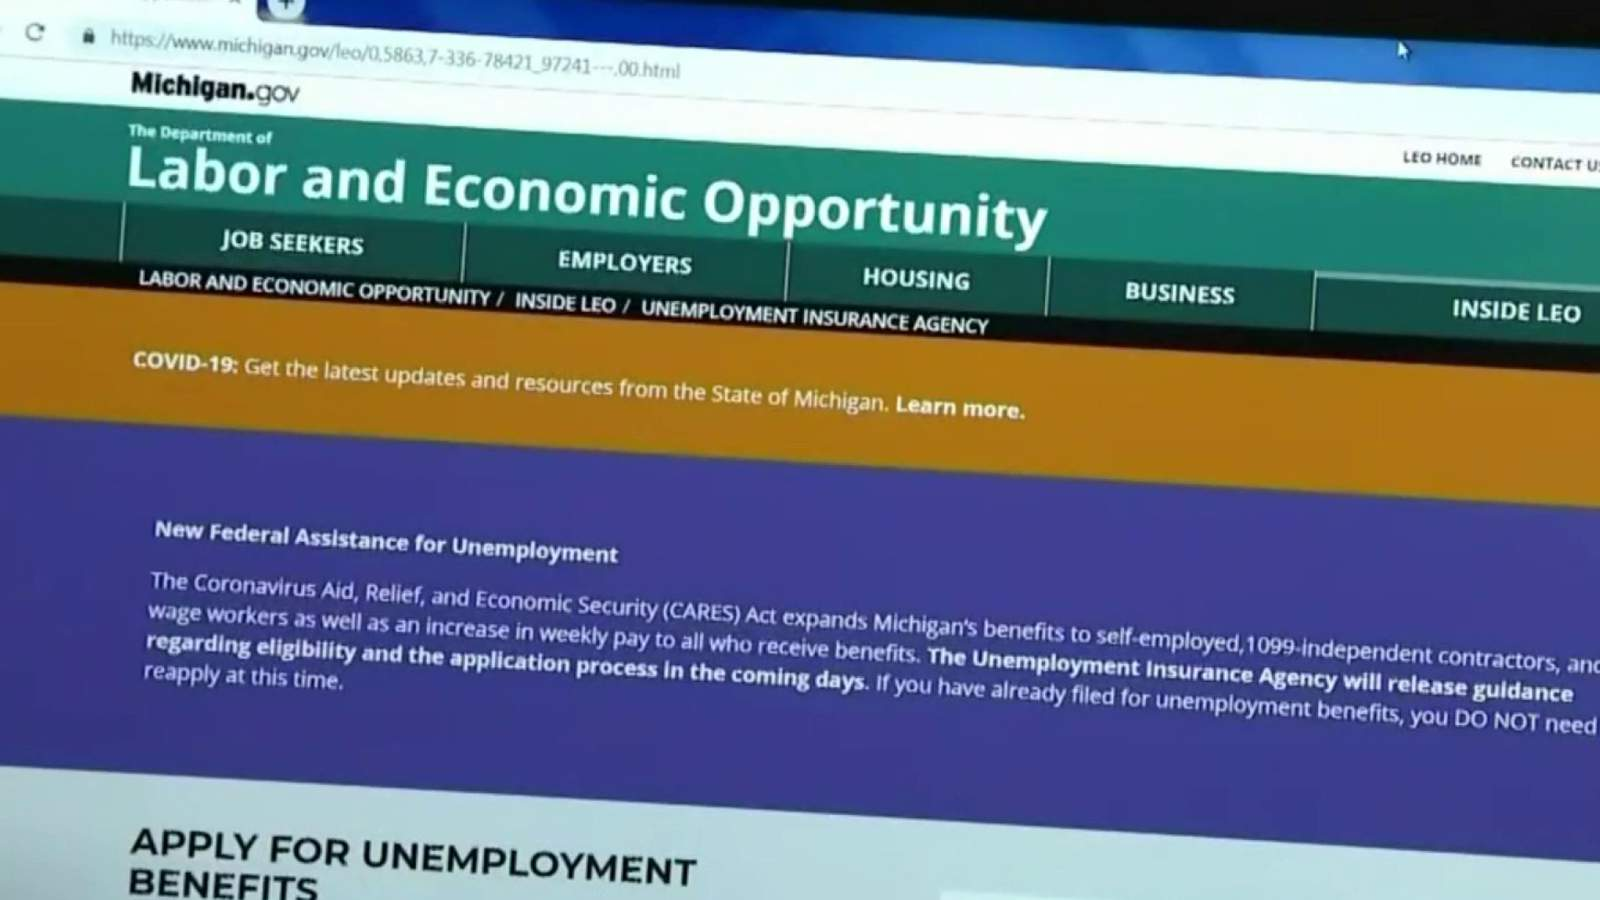 Q A Michigan Unemployment Agency Answers Questions About Issues Applying For Benefits